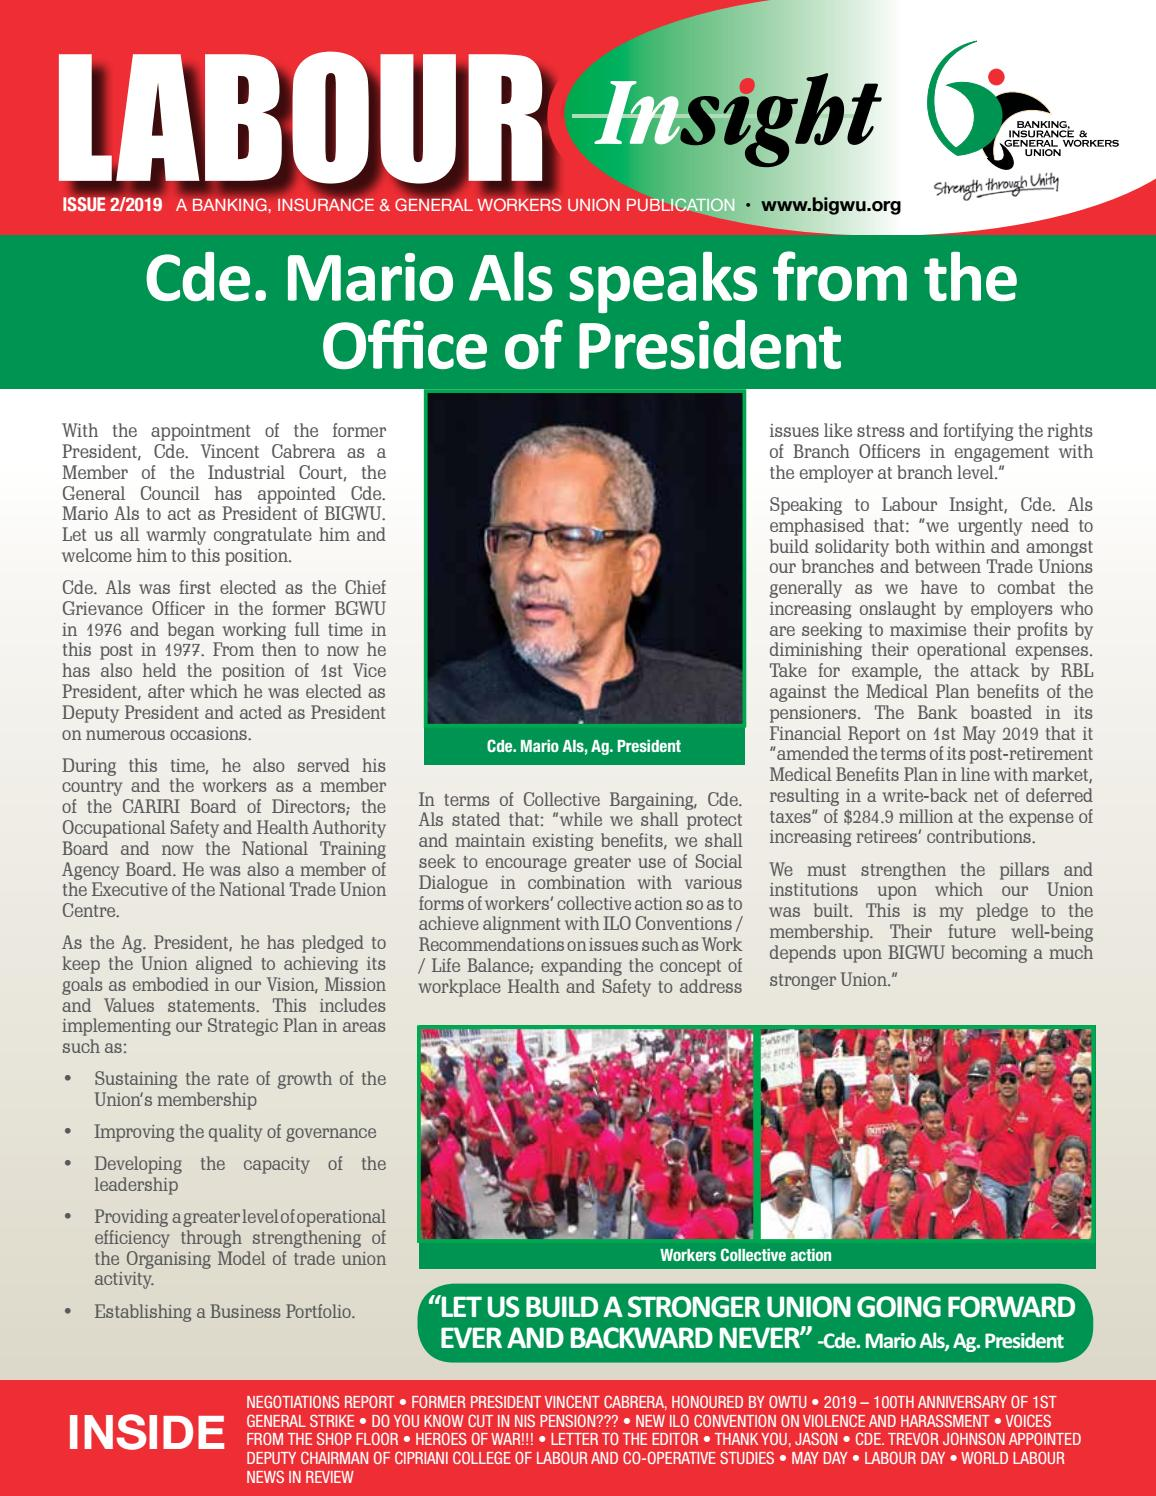 BIGWU Labour Insight Issue 2/2019 by Jean-Paul Bethelmy - issuu